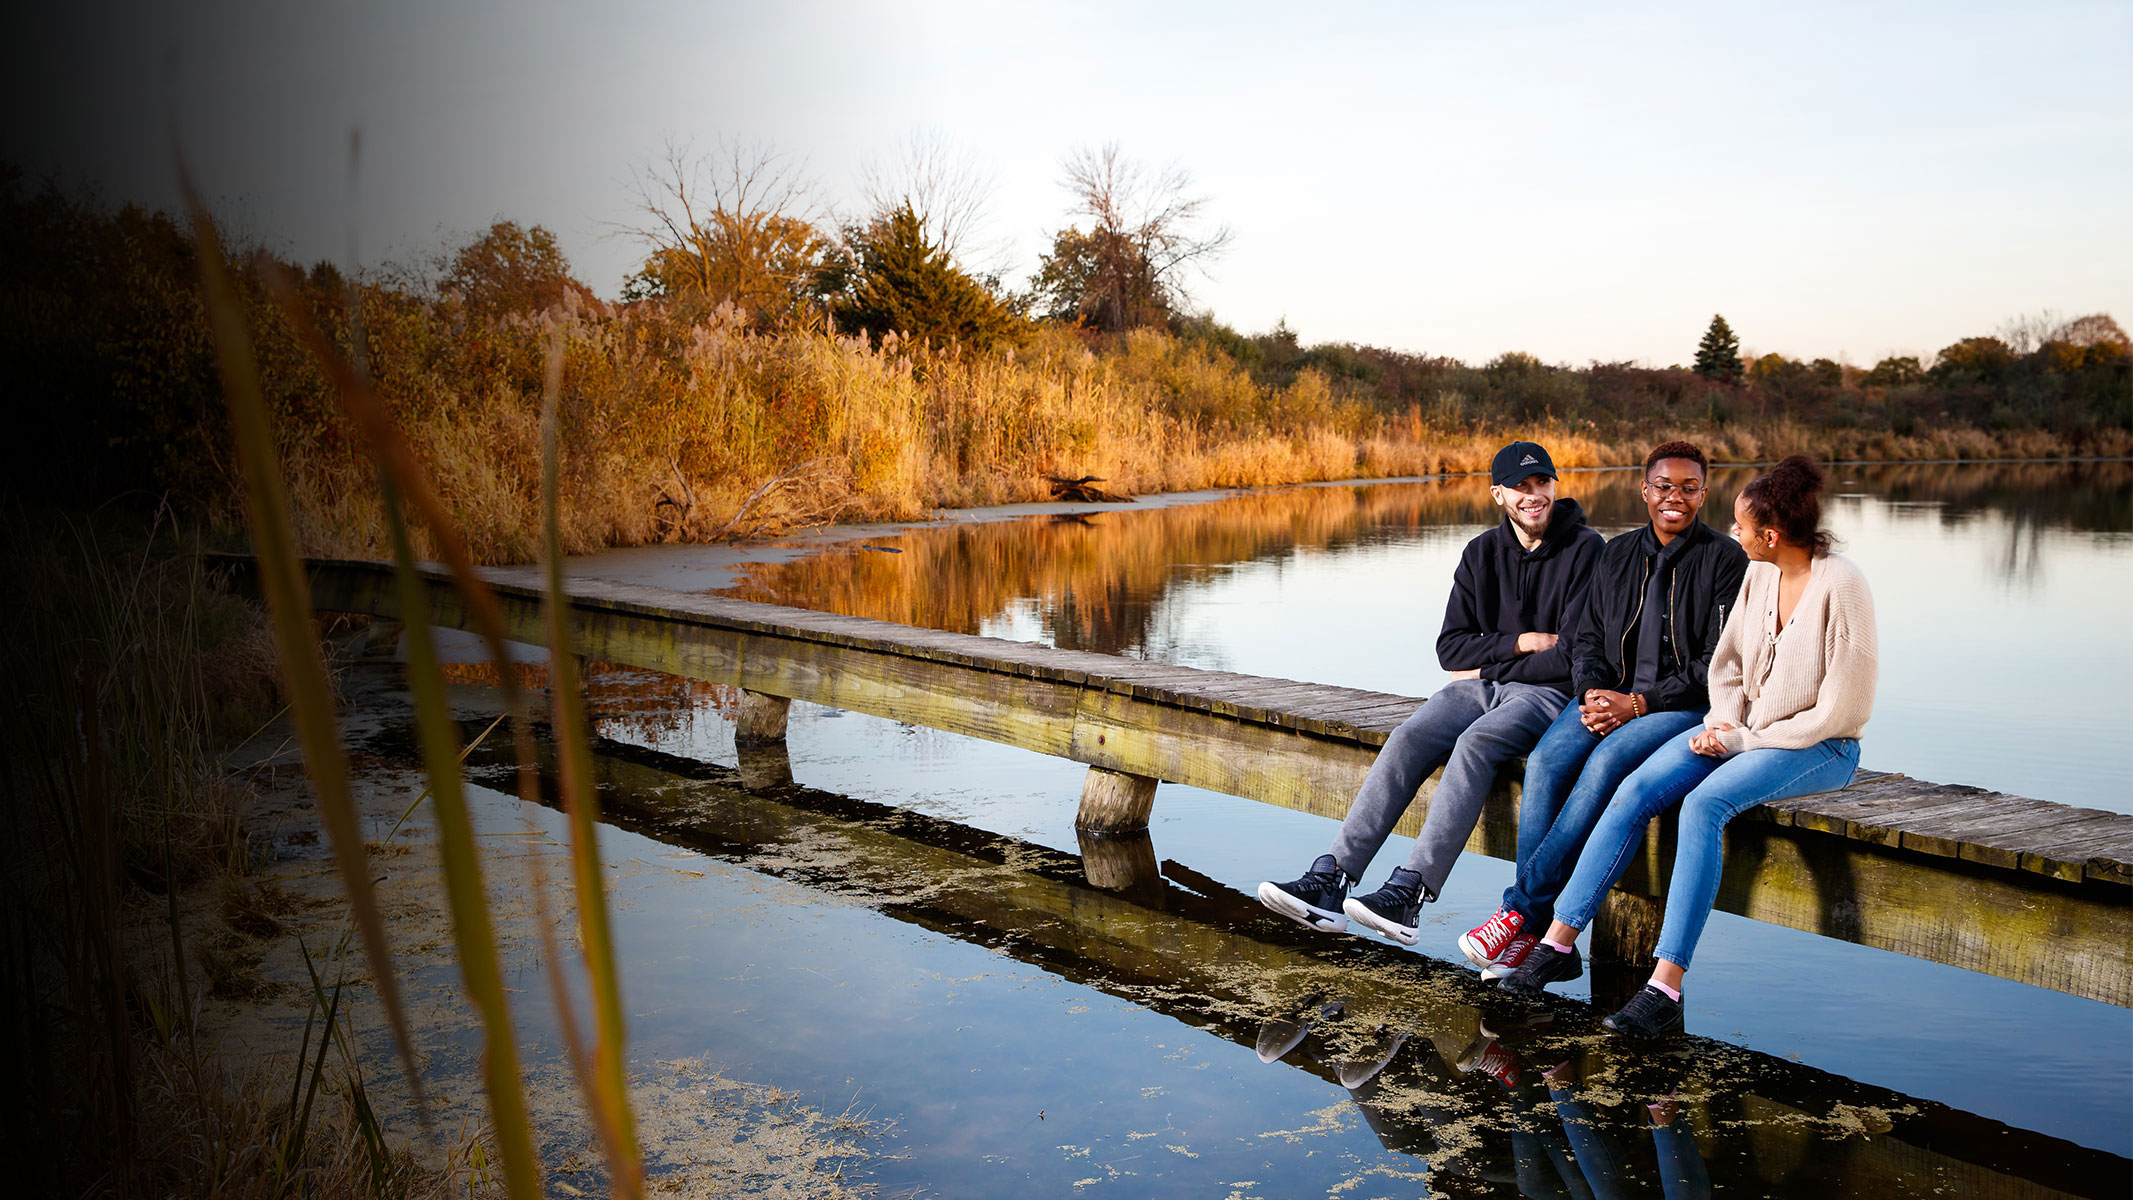 Three students sitting on the dock by the lake